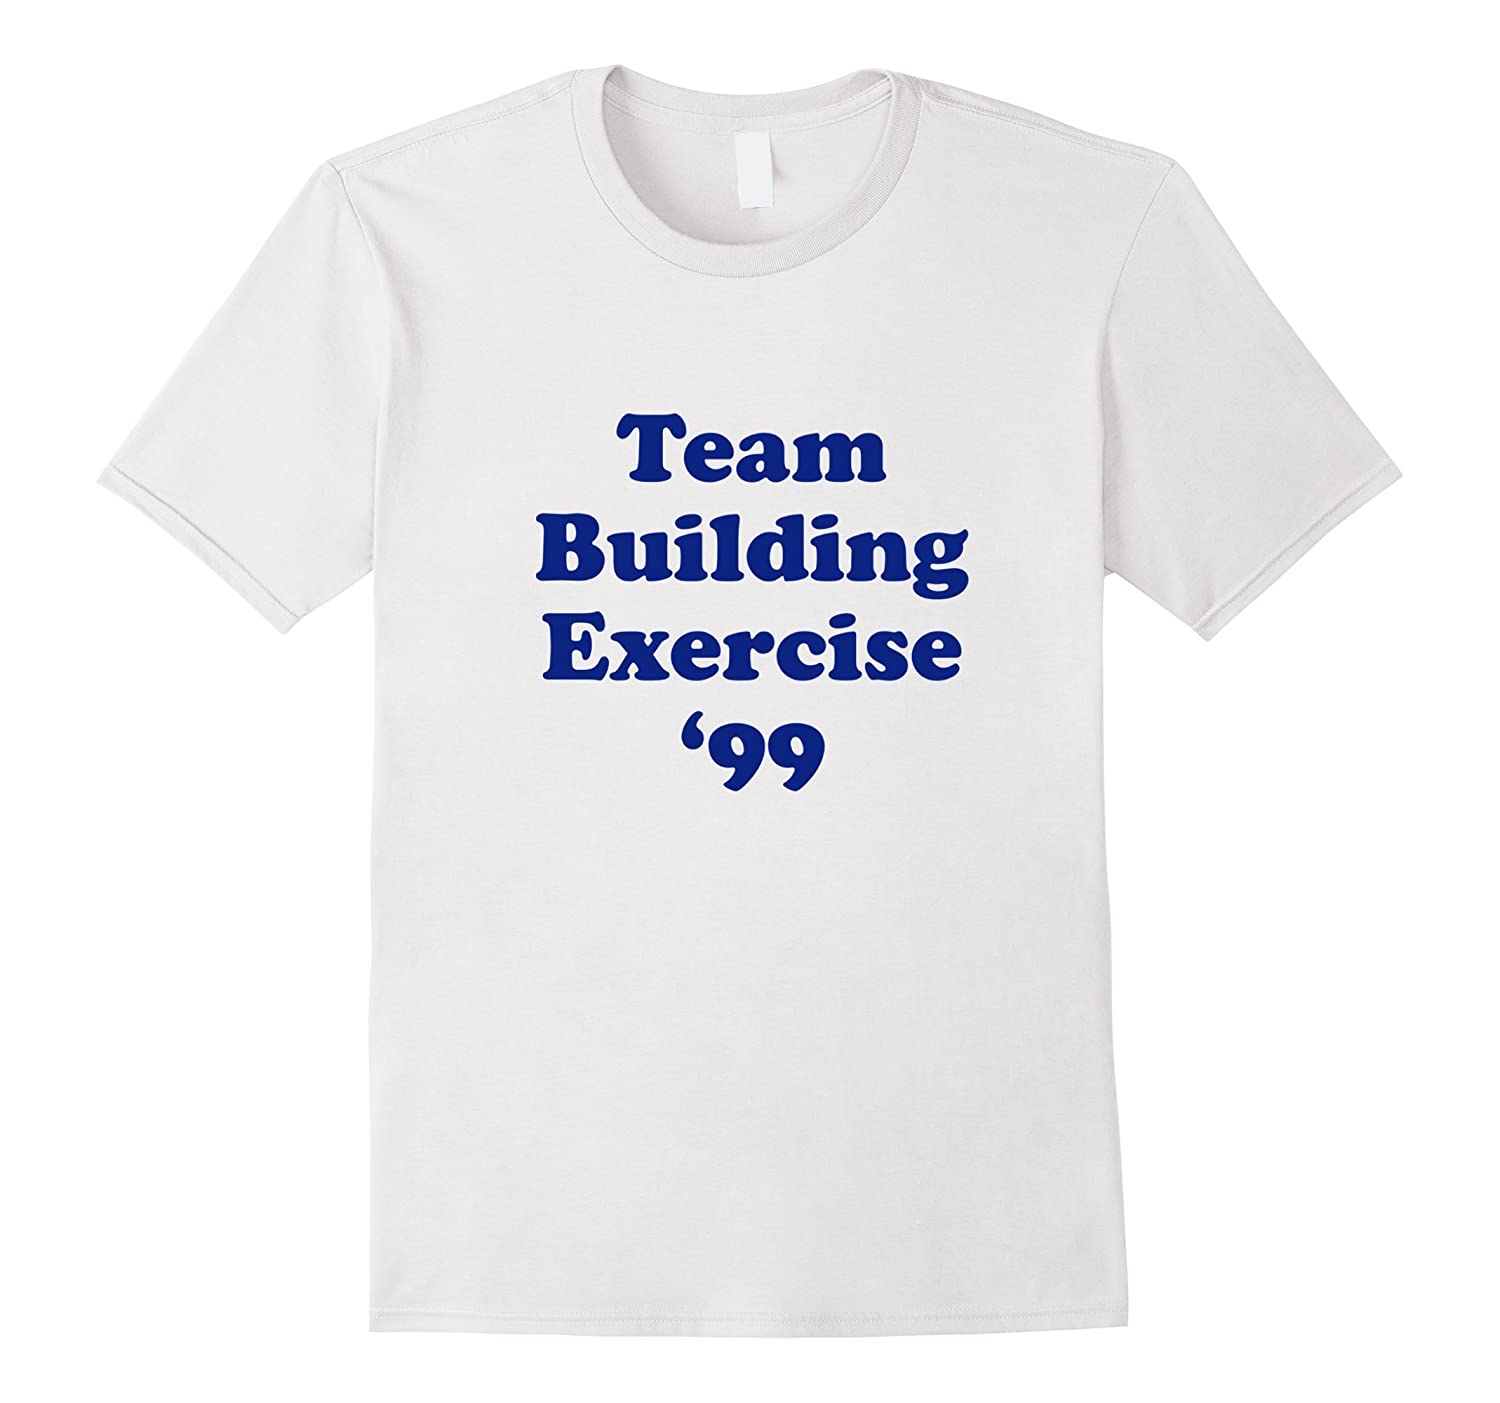 3069299cc82 Team Building Exercise 99 T-Shirt-PL – Polozatee